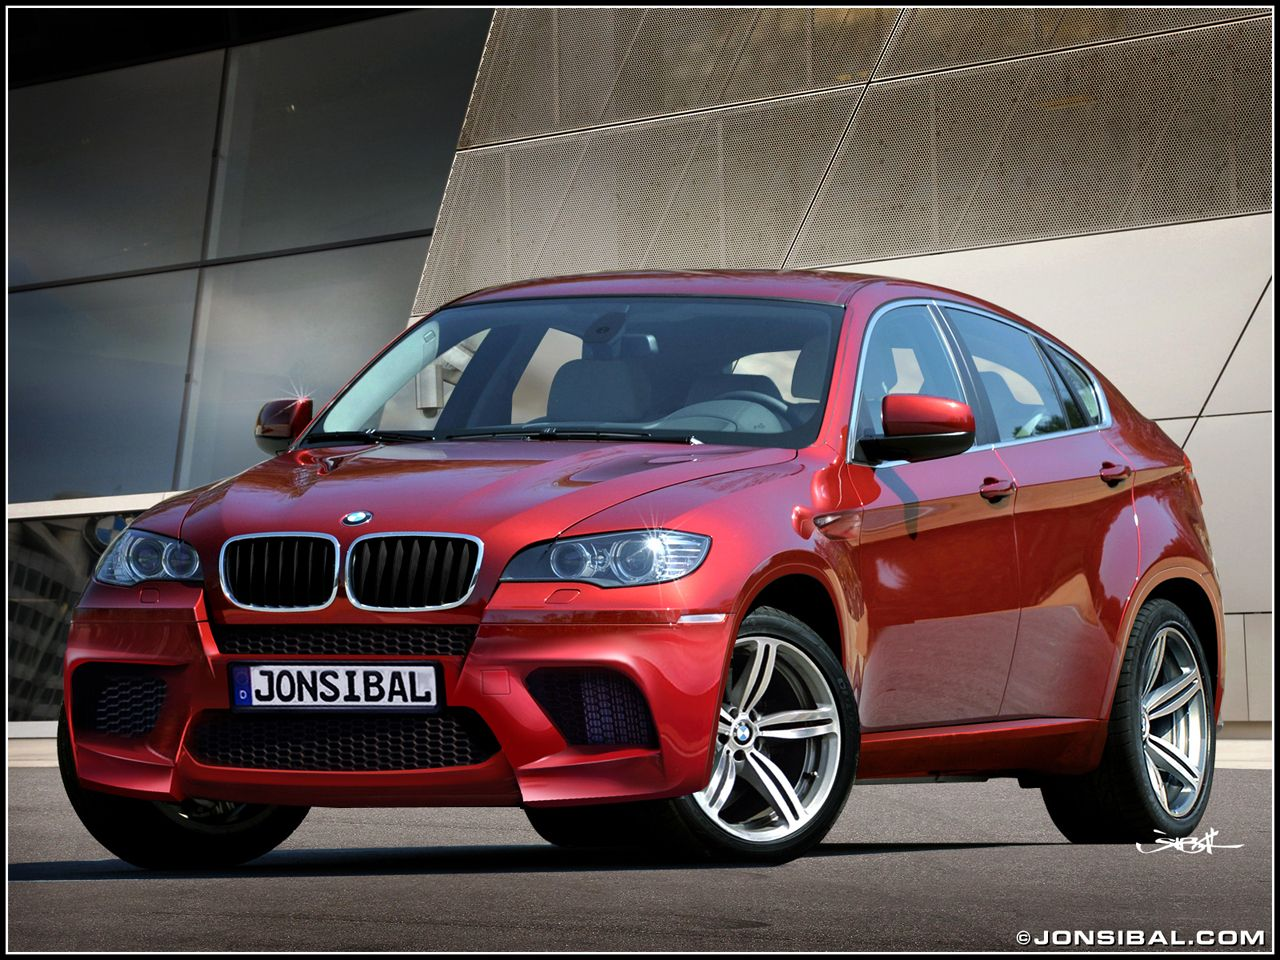 Bmw X6m In Metallic Ruby Red With Black Leather Interior